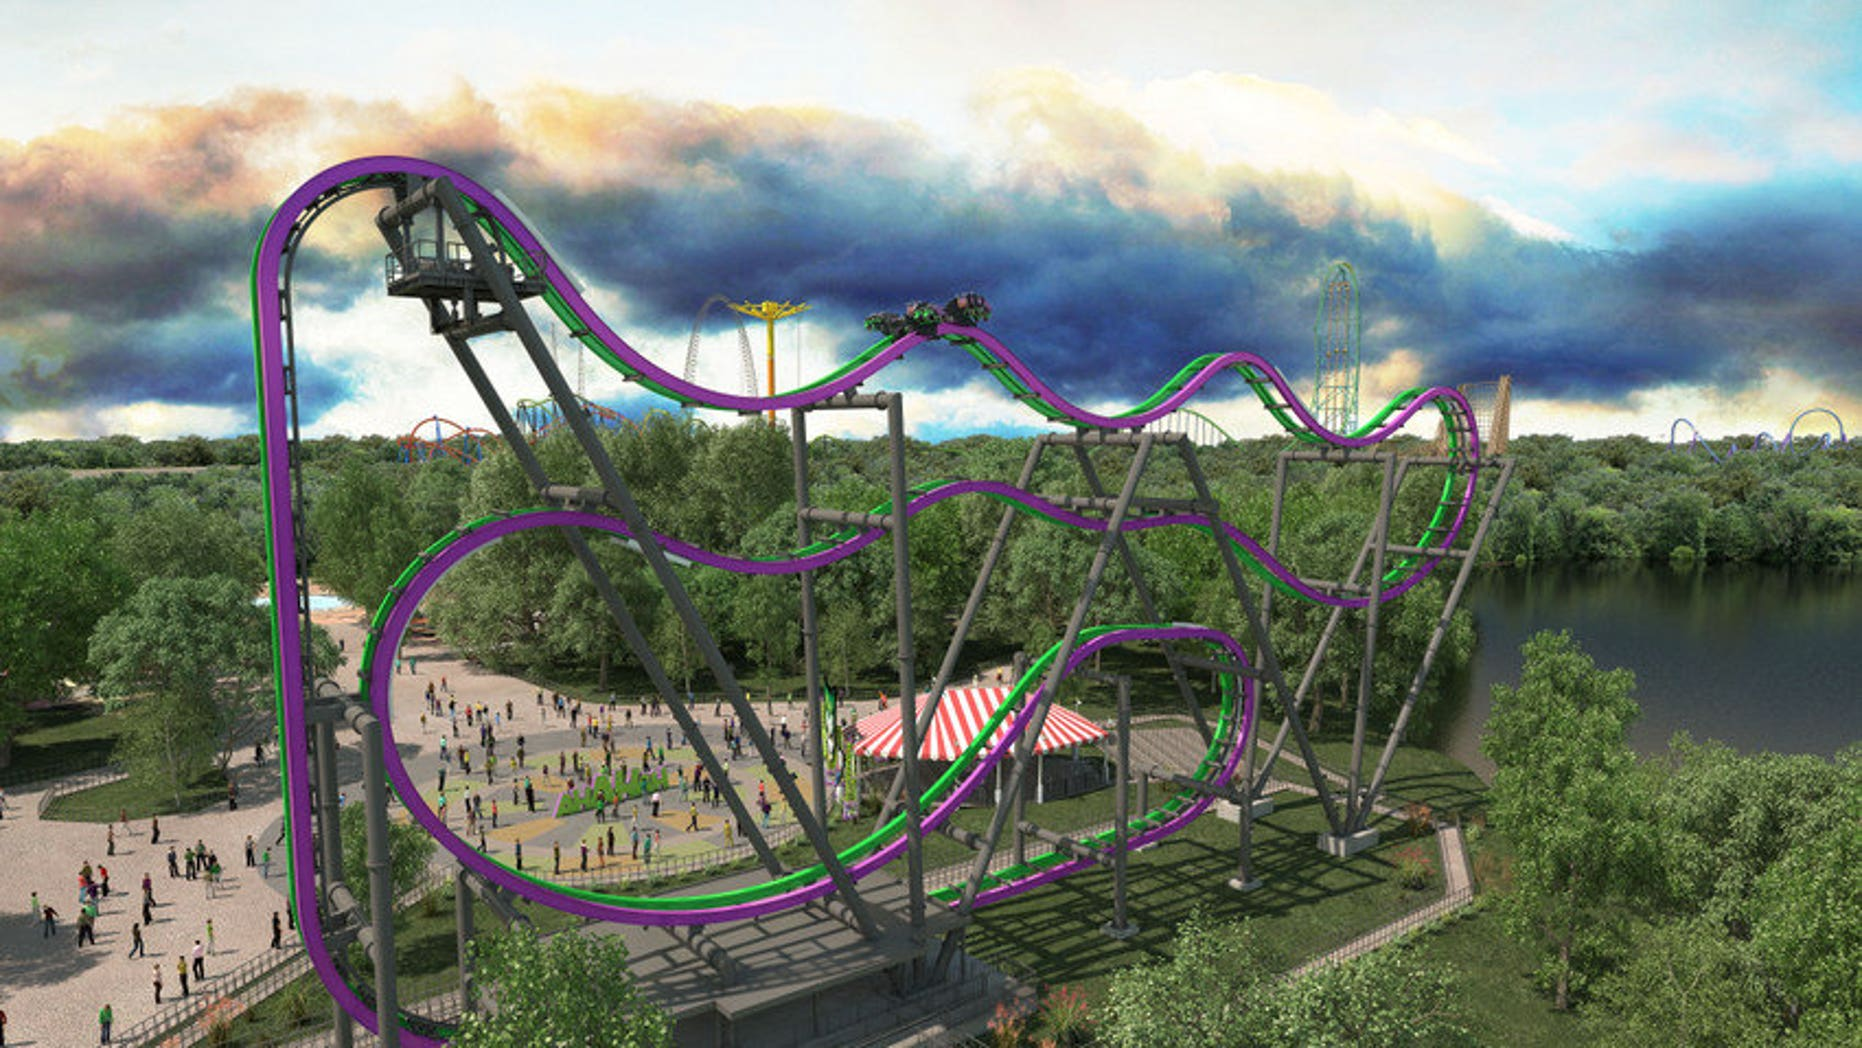 The Joker coaster is scheduled to open this weekend in Jackson, N.J.